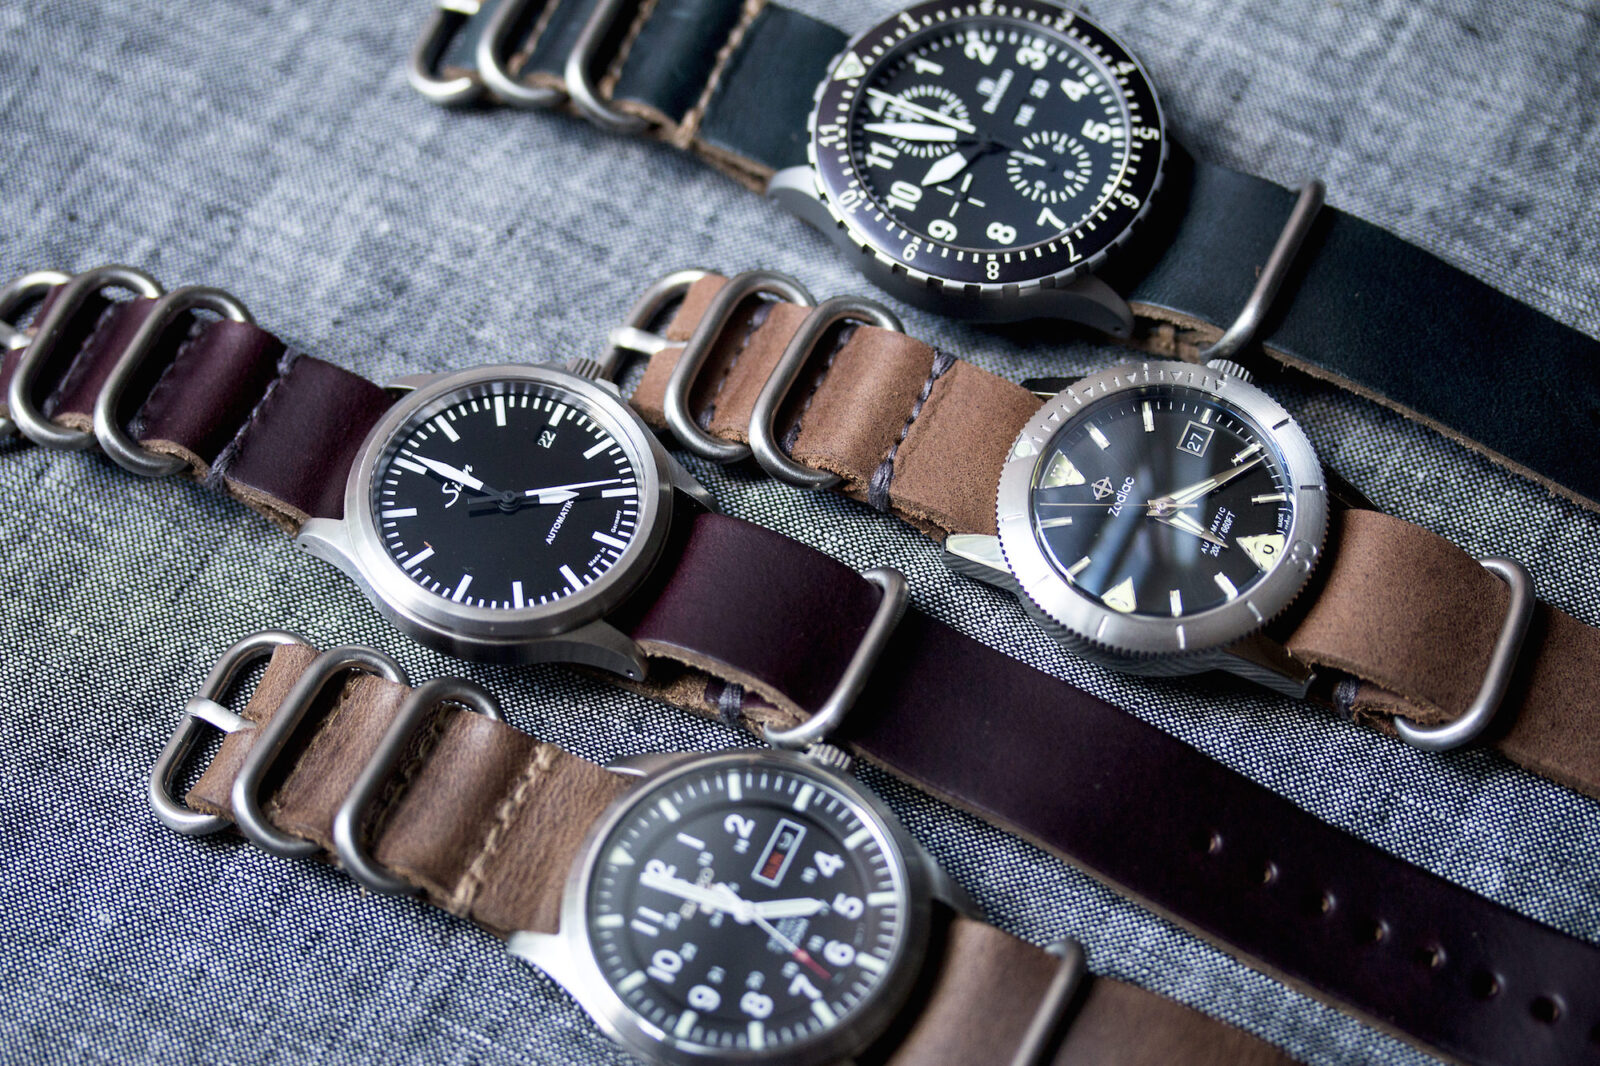 Military Watch Strap by Worn Wound 4 1600x1066 - Military Watch Strap by Worn & Wound